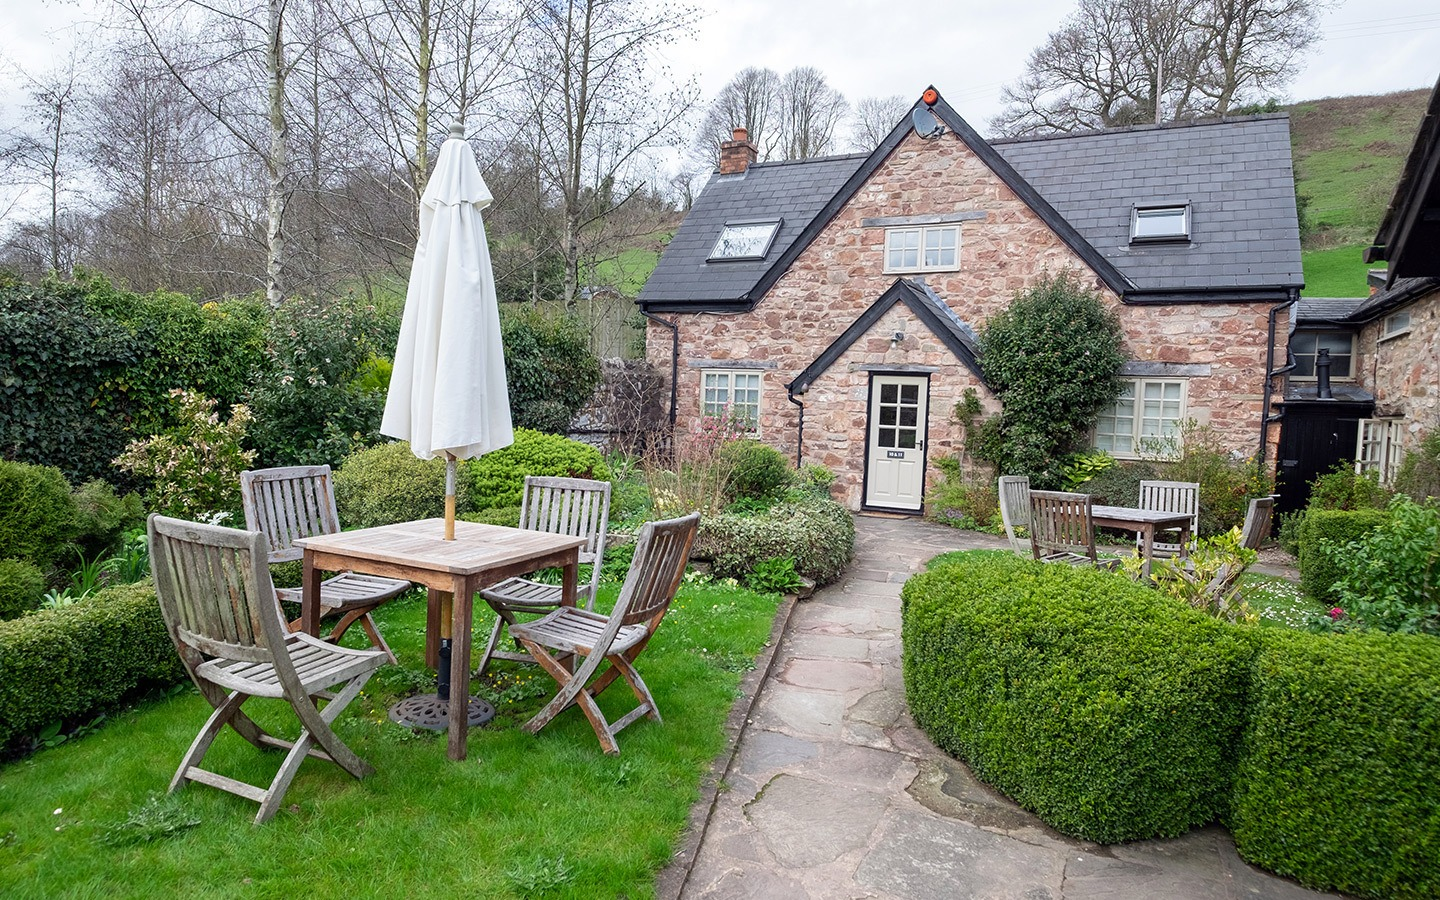 Exploring England's Forest of Dean with a luxury stay at the Tudor Farmhouse hotel in Clearwell, a former farm turned boutique hotel with award-winning restaurant, surrounded by Forest of Dean attractions like Puzzlewood and Clearwell Caves.